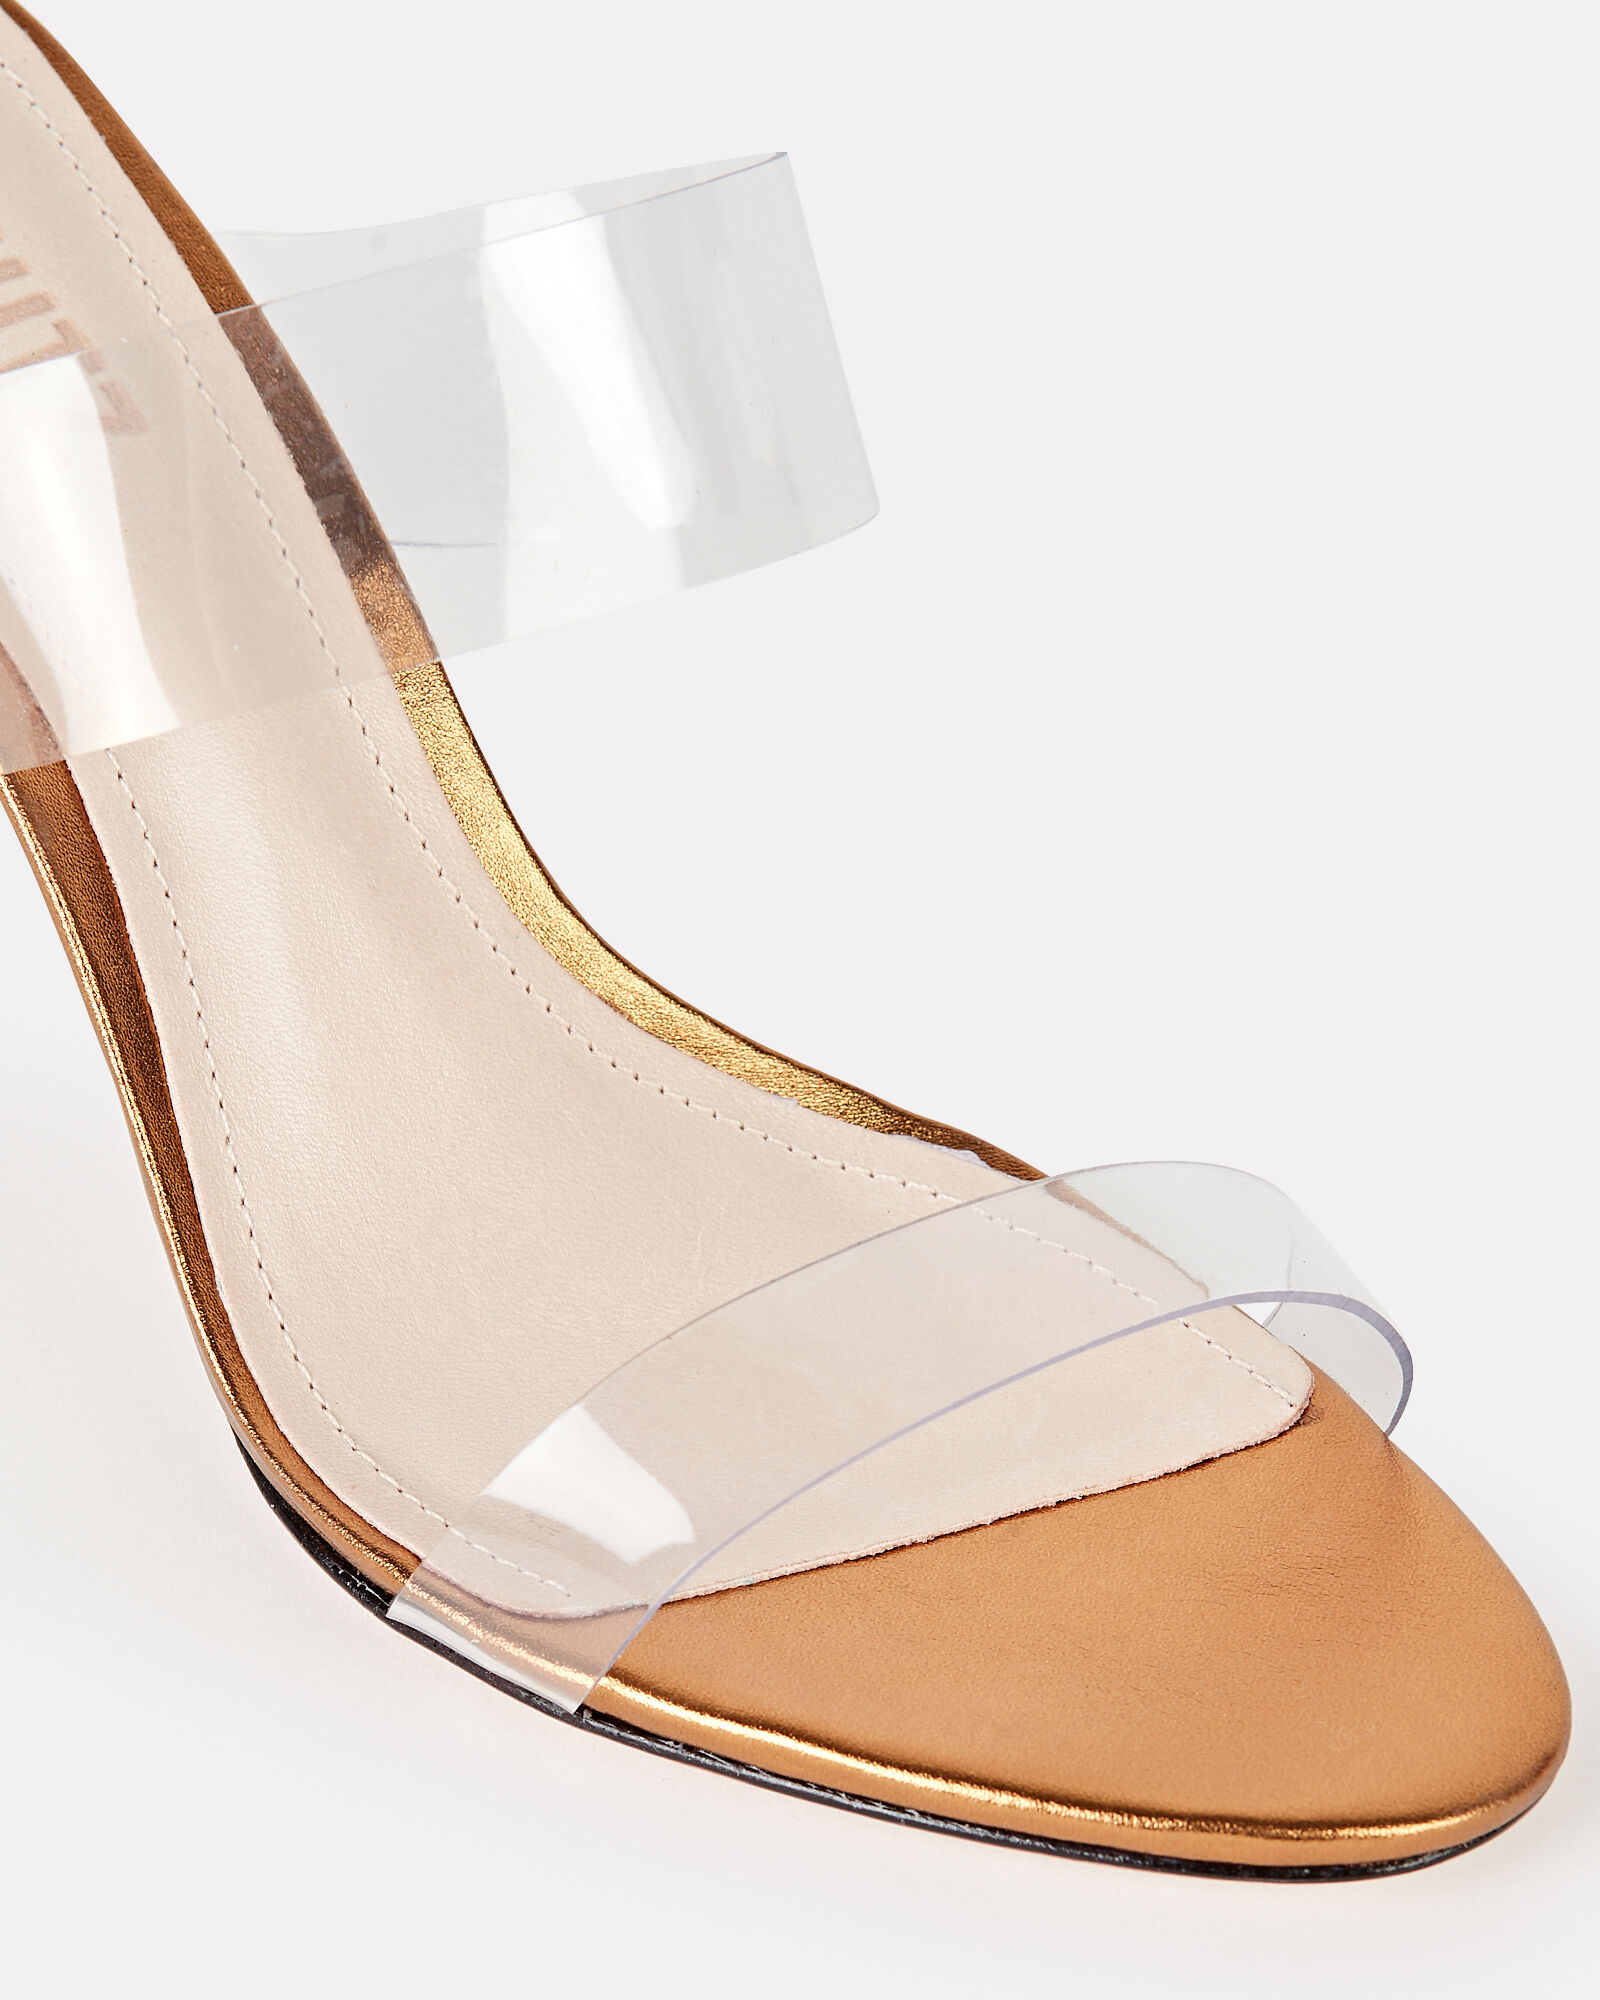 Ariella PVC Strap Sandals, CLEAR, hi-res